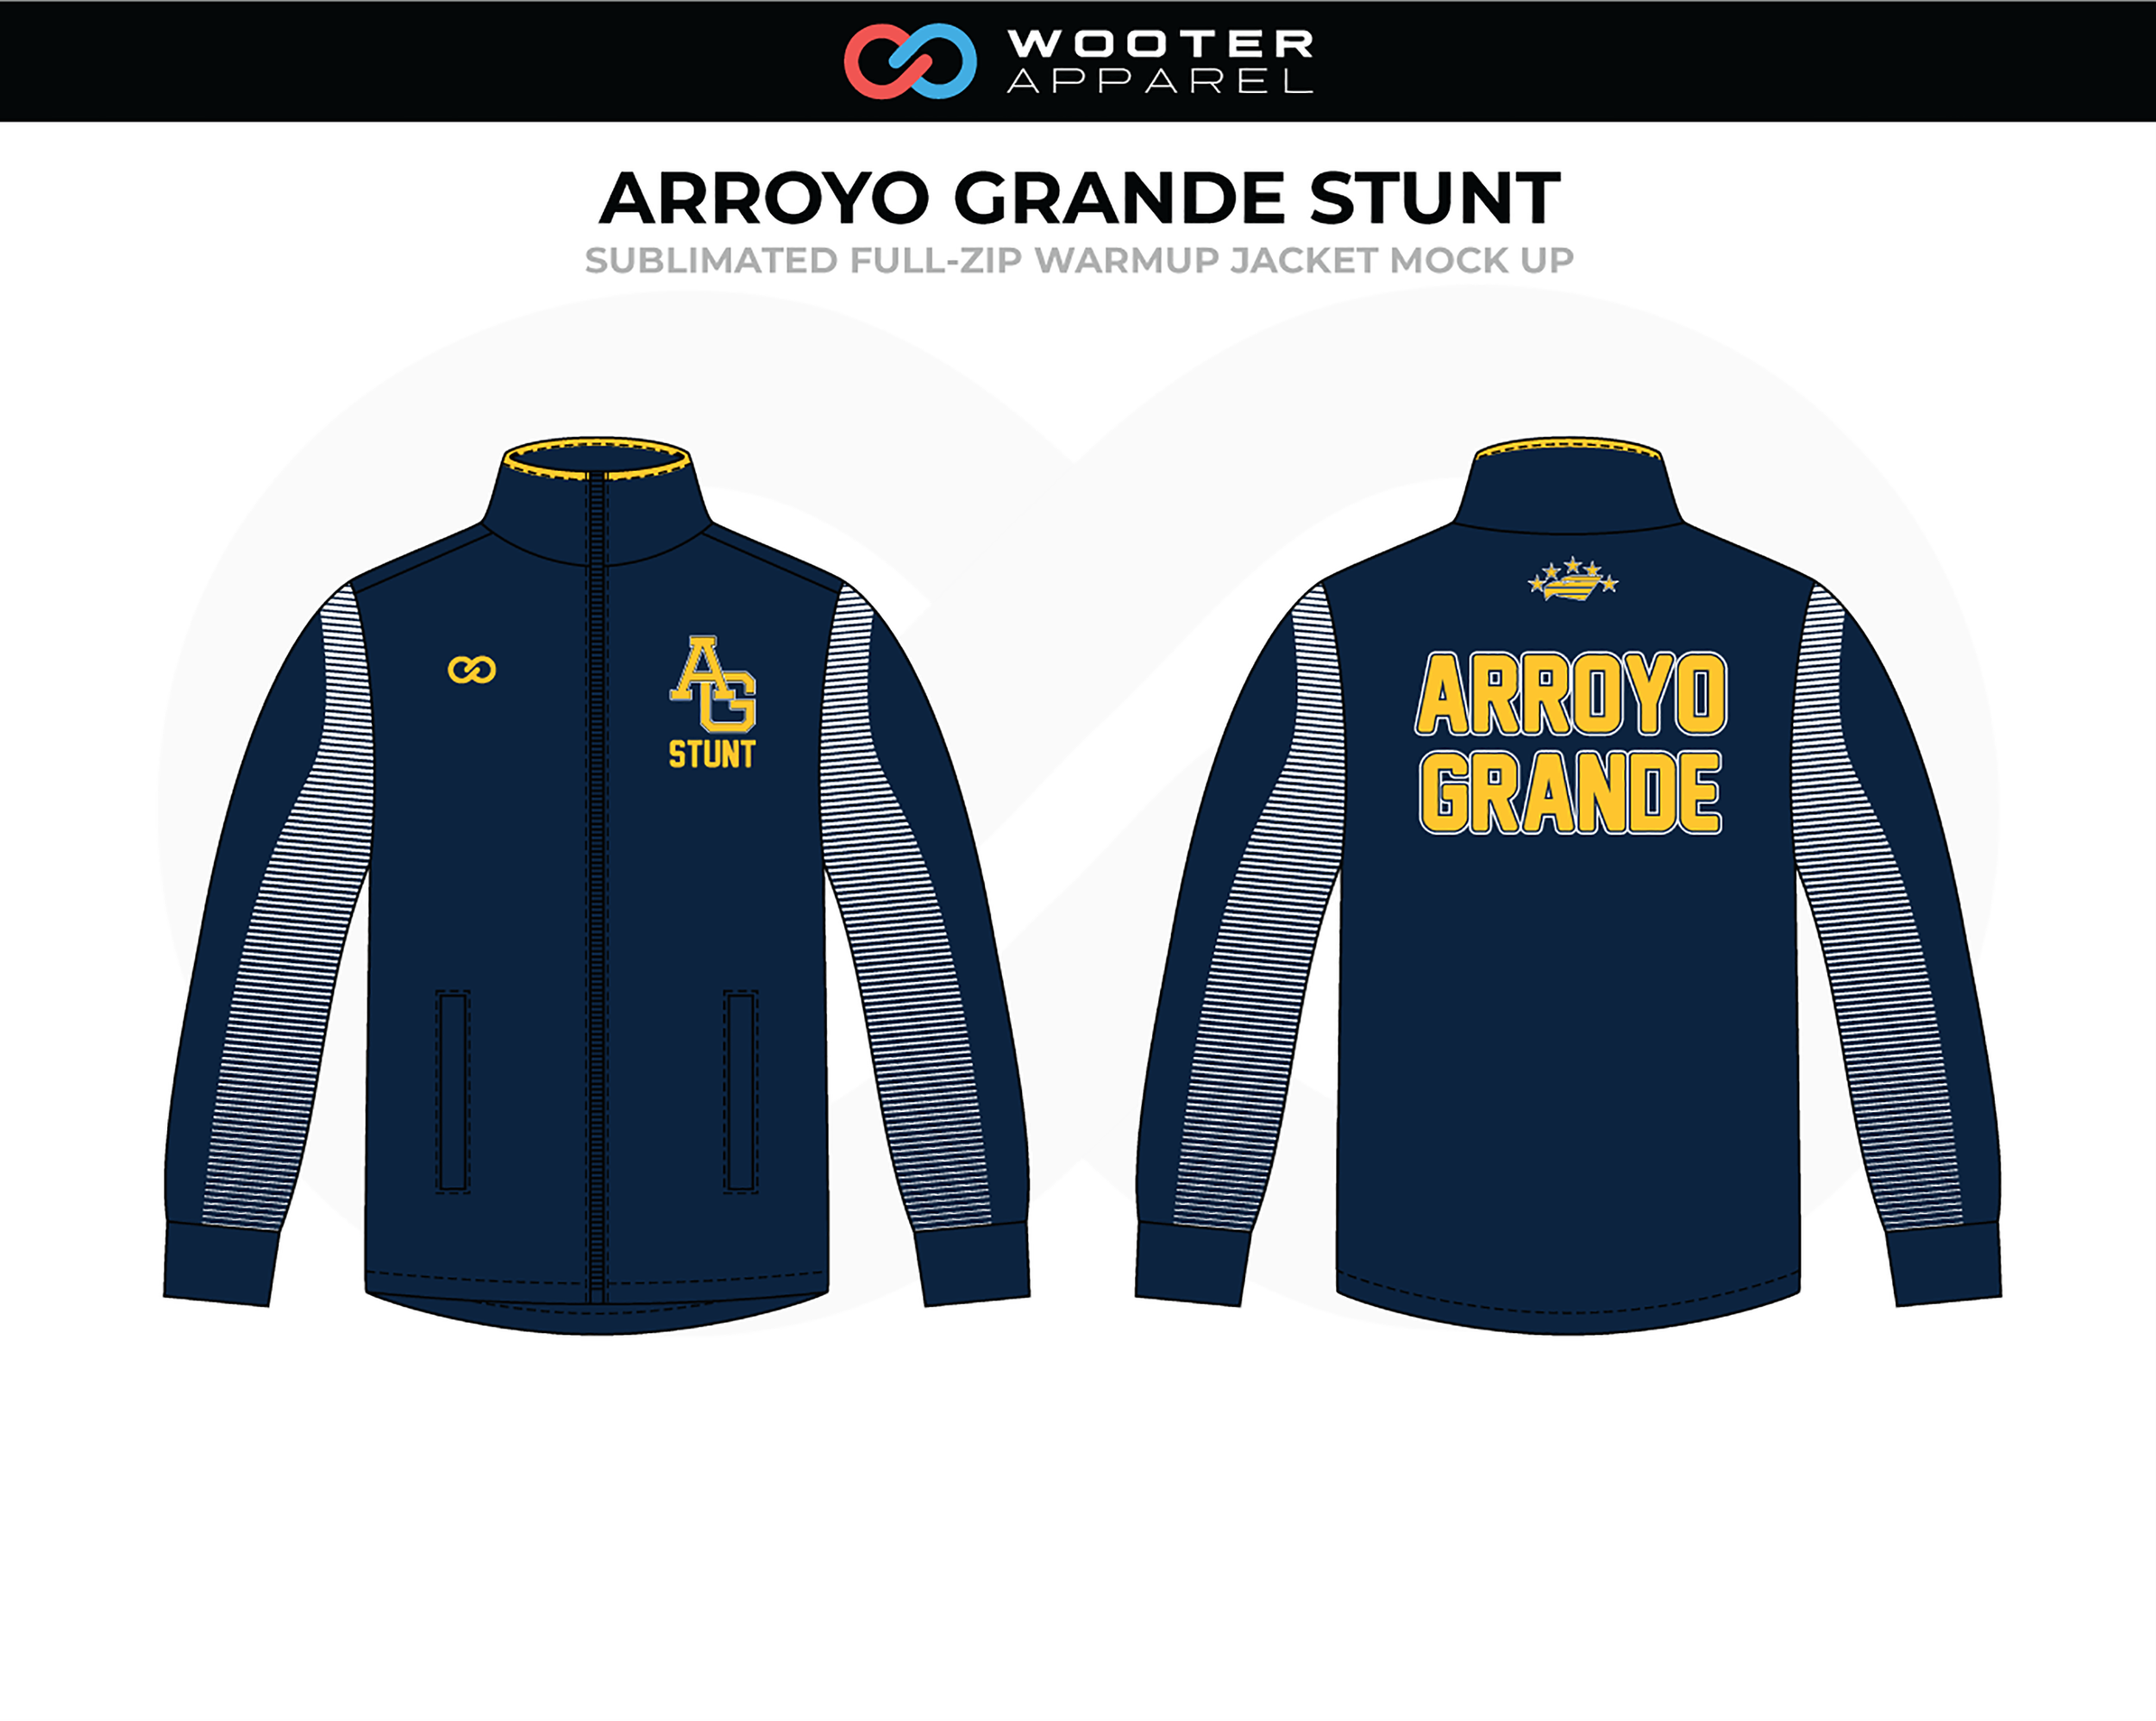 ARROYO GRANDE STUNT Navy Blue Gray Yellow Volleyball  Full-Zip Warm Up Jacket